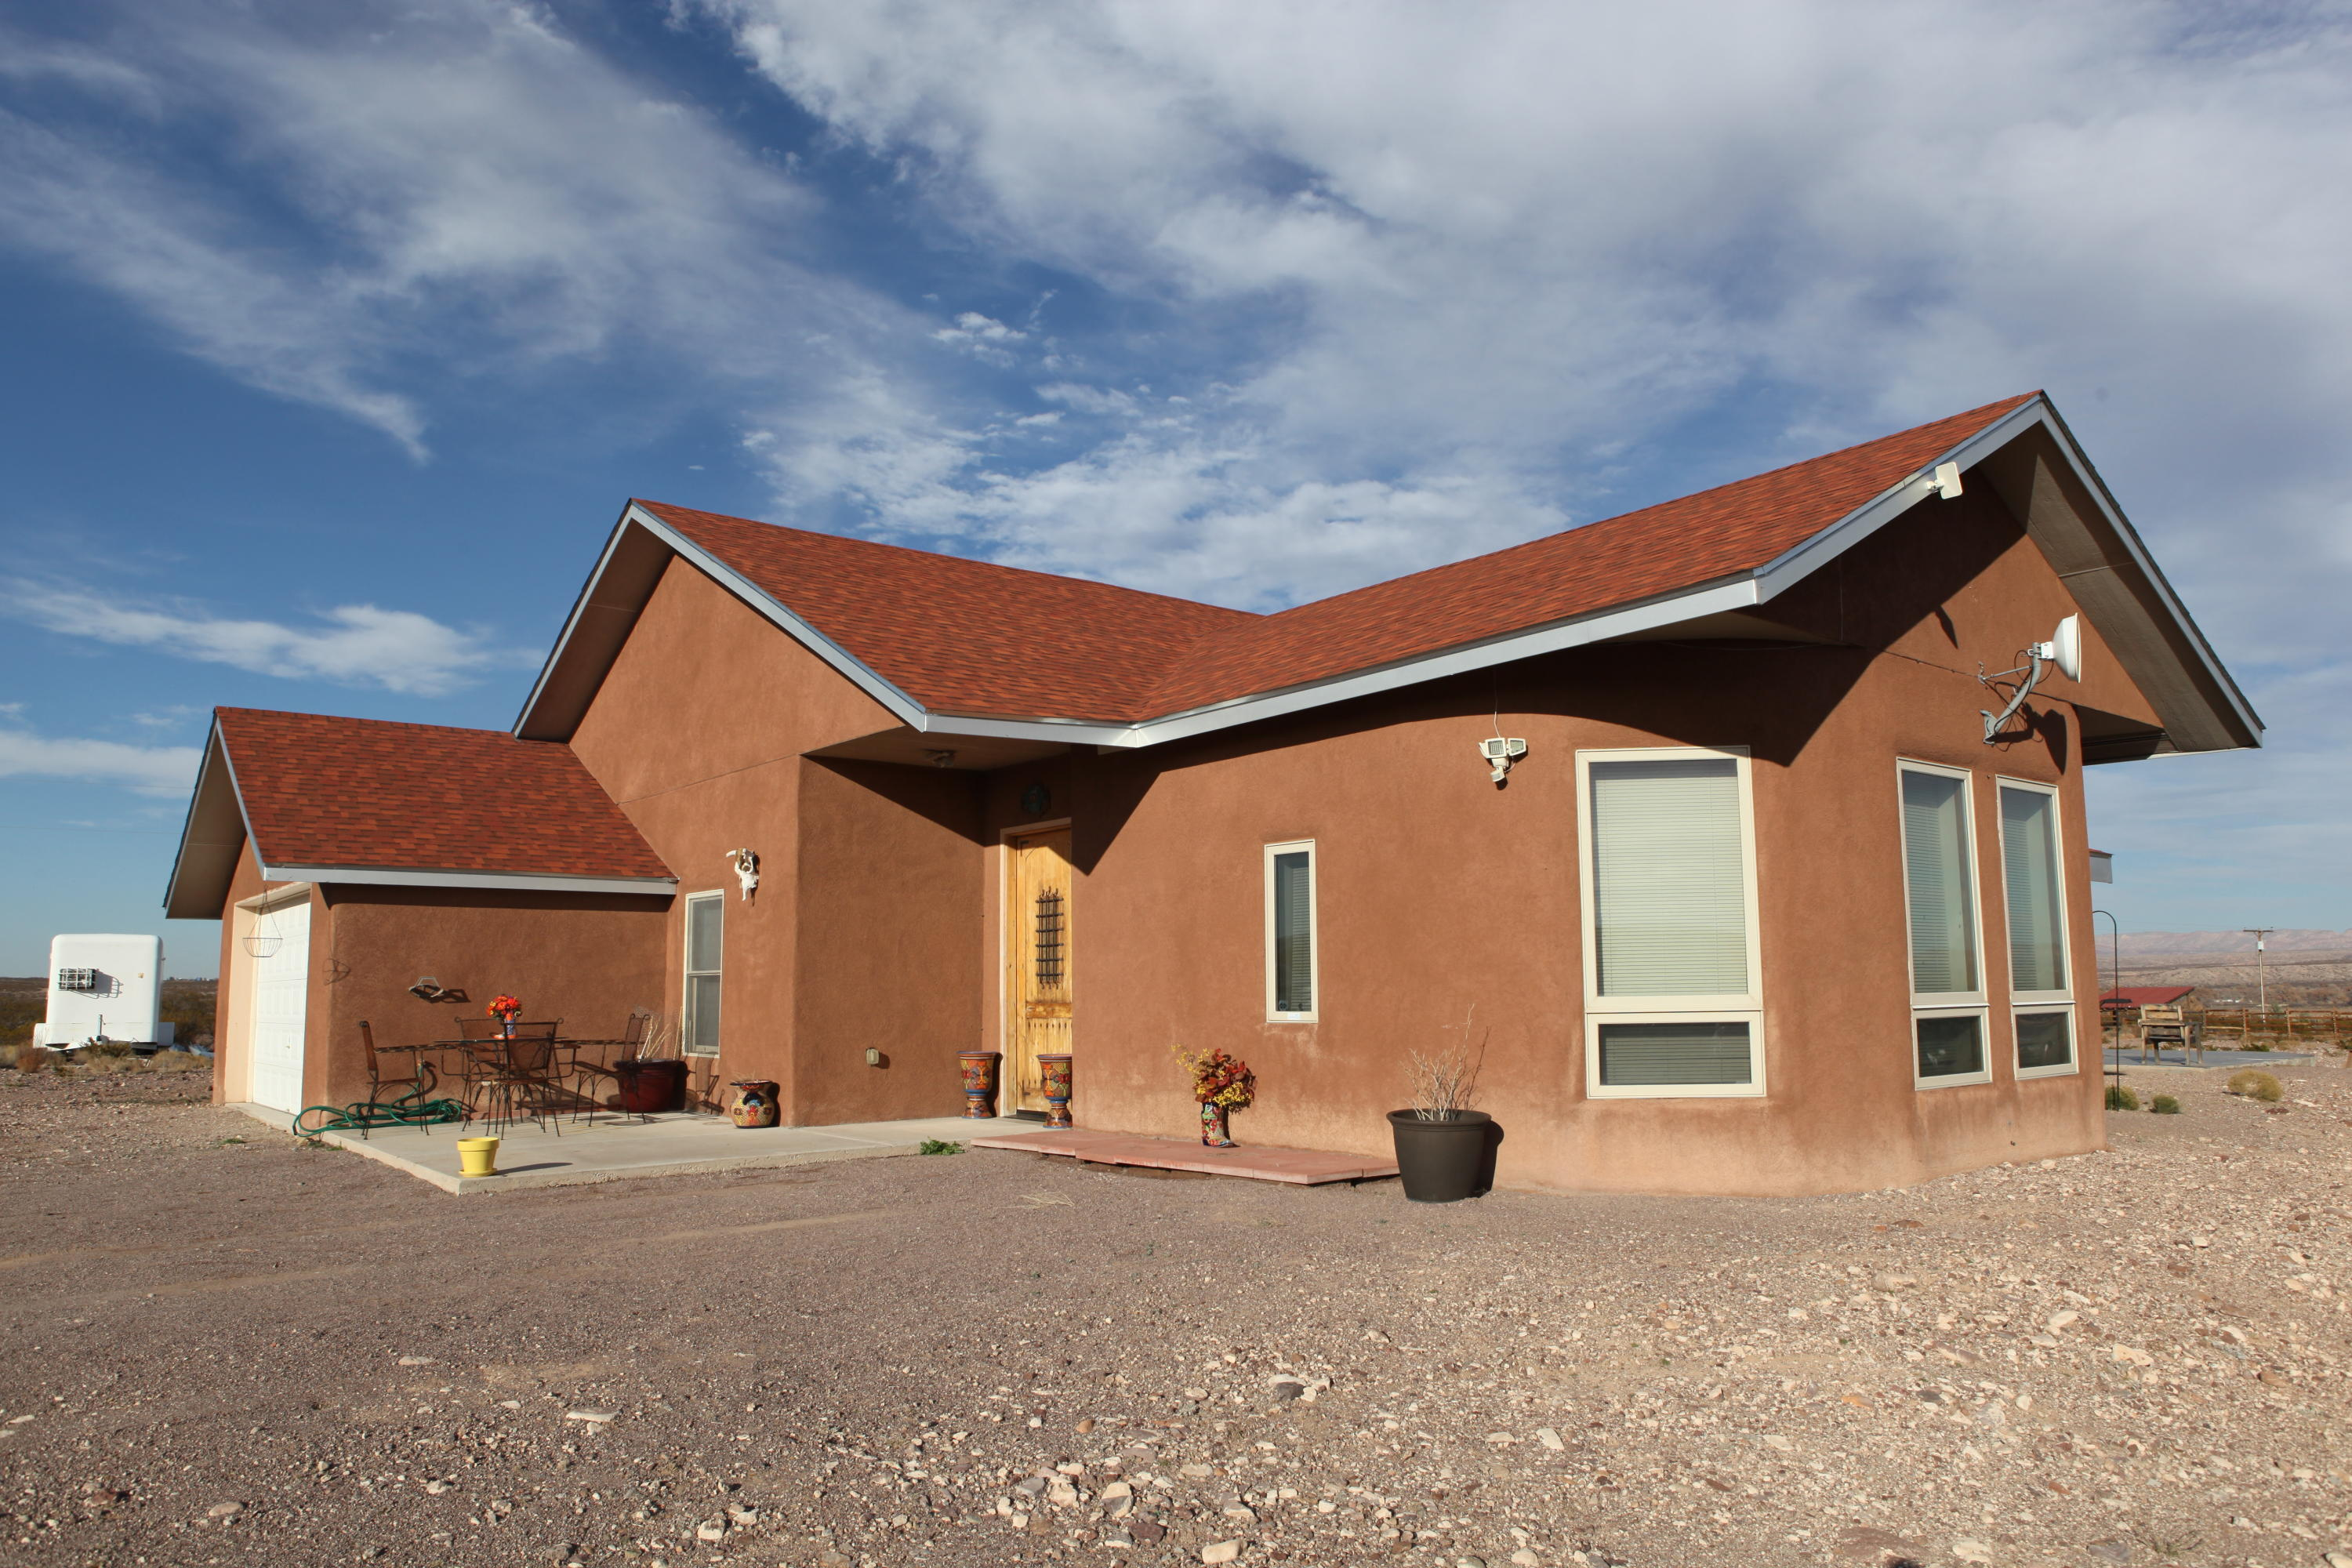 Country living between Socorro & San Antonio. This Attractive Custom Built Rastra Block Home is on 14 plus acres. Complete with a fenced in dog kennel & a fenced in corral with a covered shed for your animals. Brick & Saltillo Tile Floors With Heating In The Floor. Custom Hickory Kitchen Cabinets. Eat-in kitchen, family dinning room. Spacious living room with a loft.  Vaulted ceilings with skylights. Two full size bathrooms with cultured marble shower, tile and corian  counter tops. A cozy jetted tub. Large walk-in closet. Heat on demand hot water heater. UV Water softener. Two car garage. Enjoy sitting on an open patio looking at the gorgeous mountainous views & unforgettable New Mexico sunsets. Private well & FREE internet. Come &make this your forever home! Mild winters & cool summers.